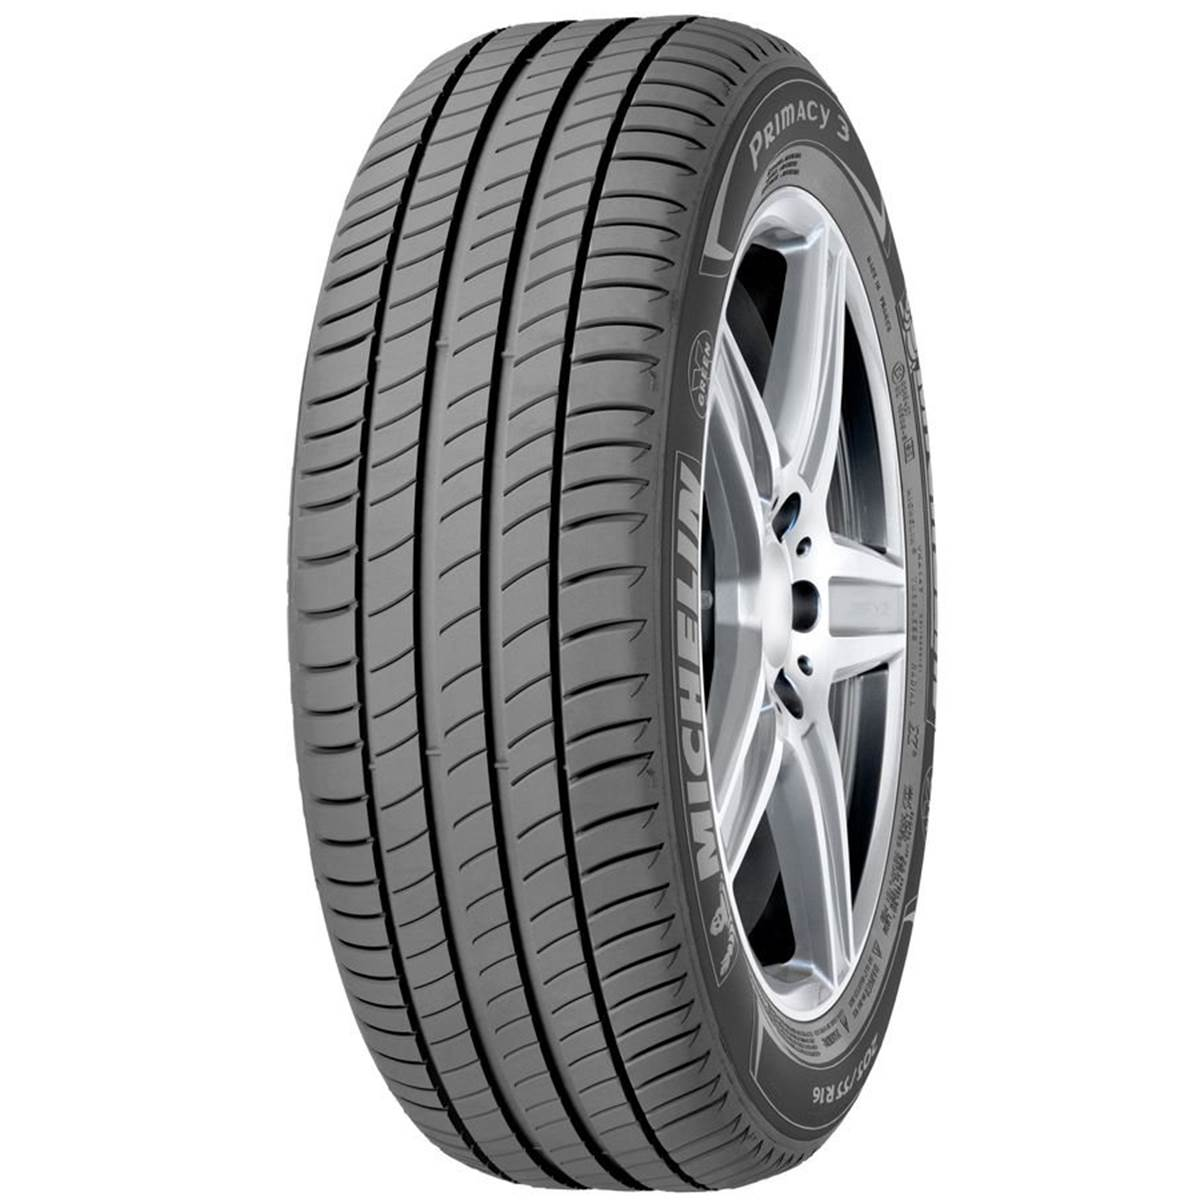 Pneu MICHELIN 245/45R18 100Y Primacy 3 AO XL